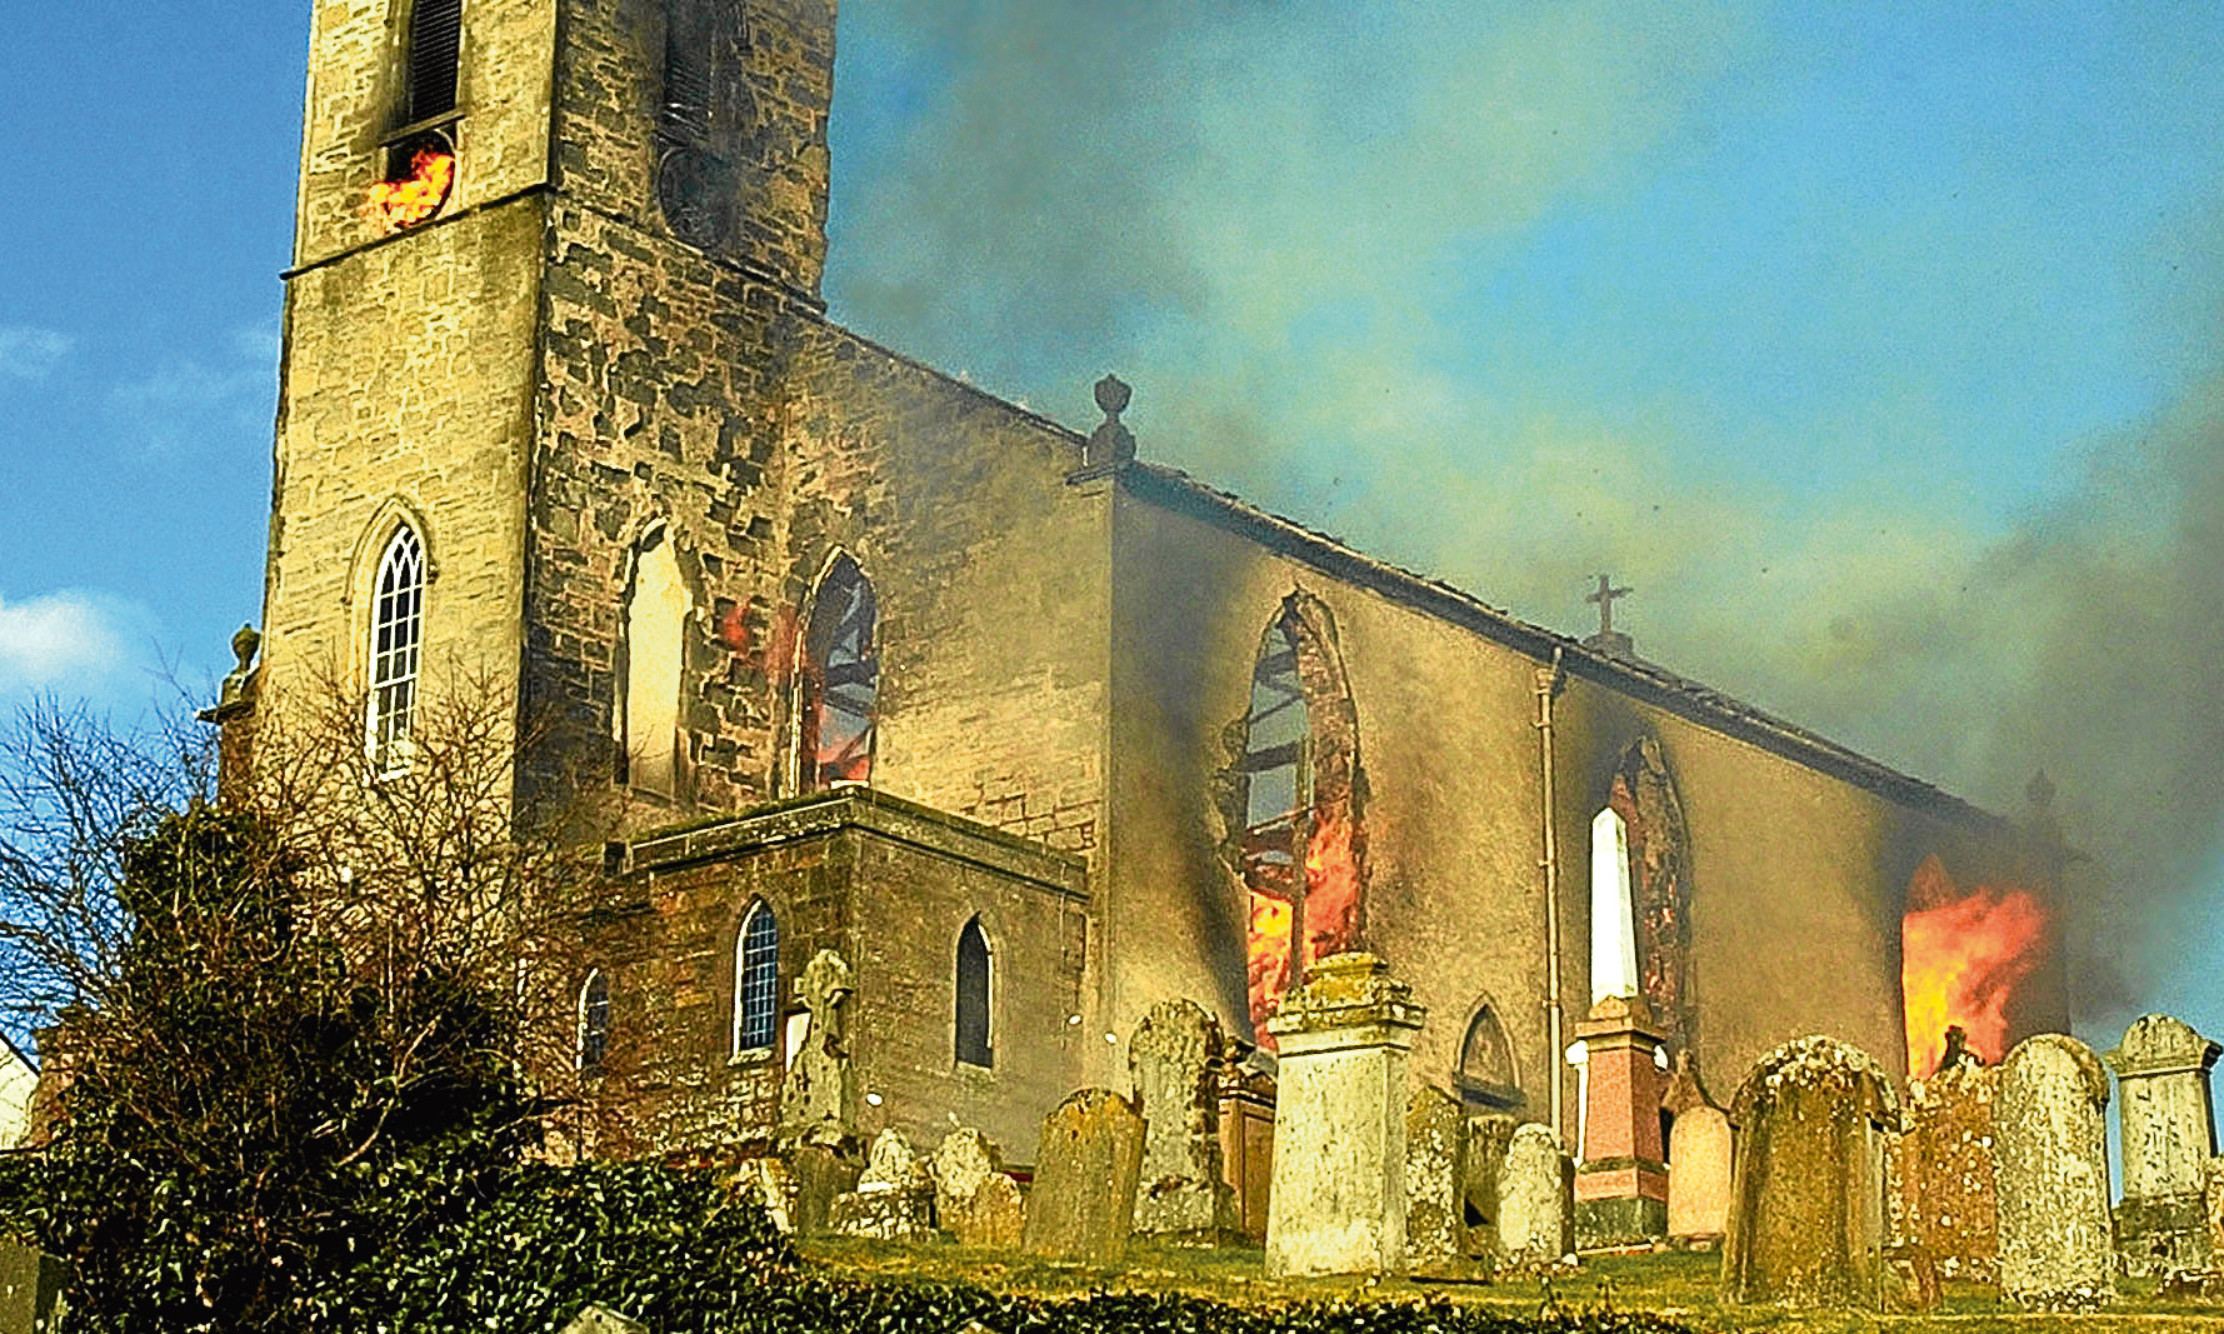 The fire at the Auchtergaven and Moneydie Church, Bankfoot.